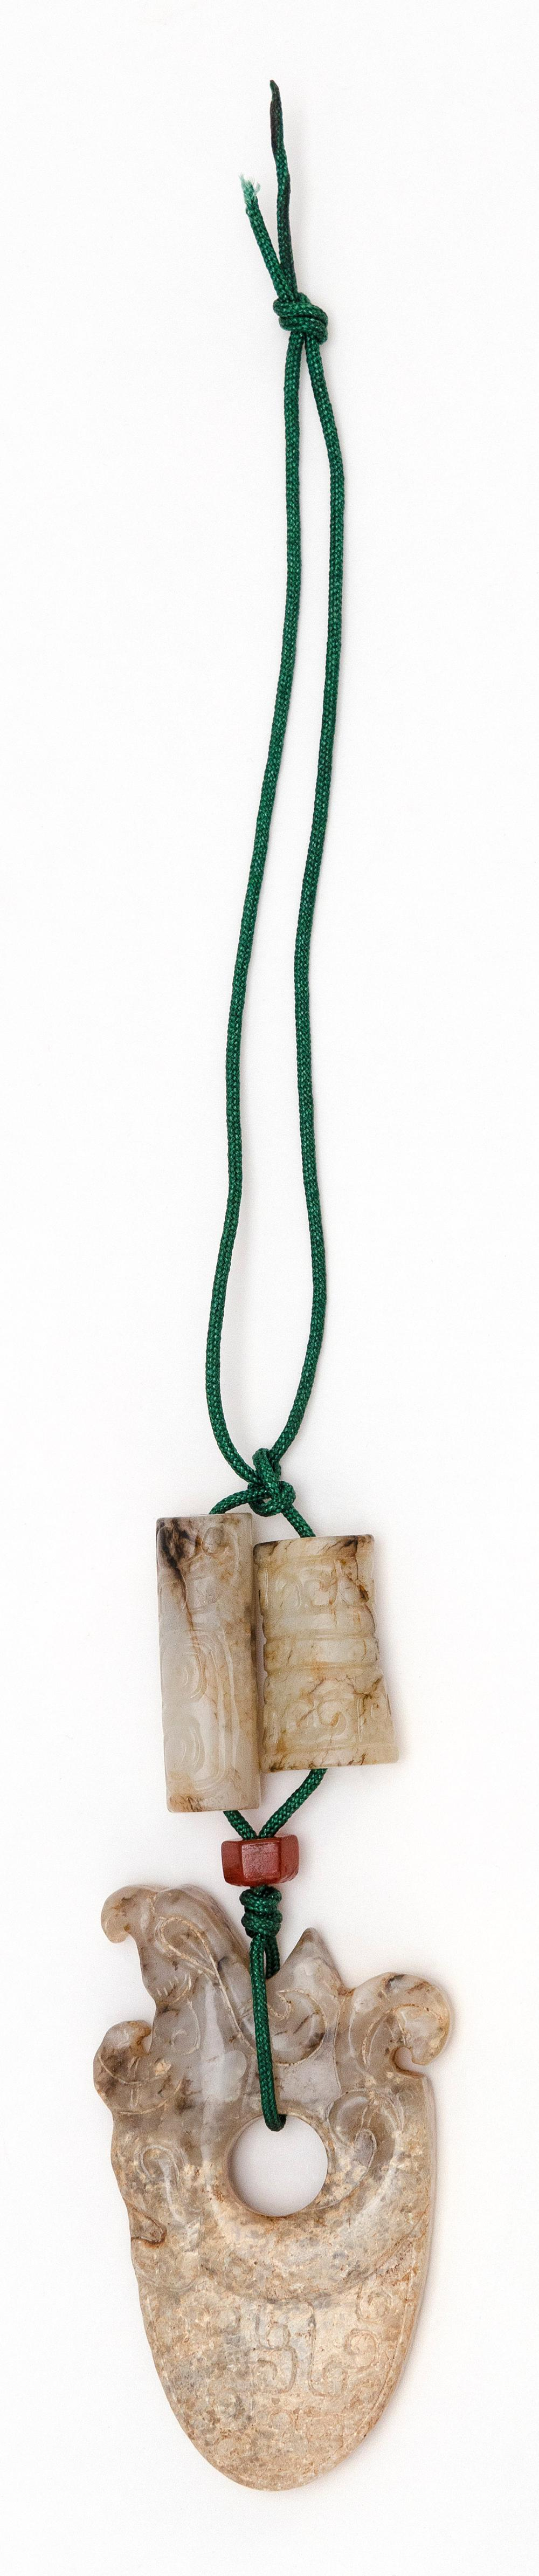 """CHINESE GRAY JADE PENDANT WITH TWO BEADS Pendant in axe-head form with phoenix carving. Length 2.75"""". Cylindrical beads with scroll..."""